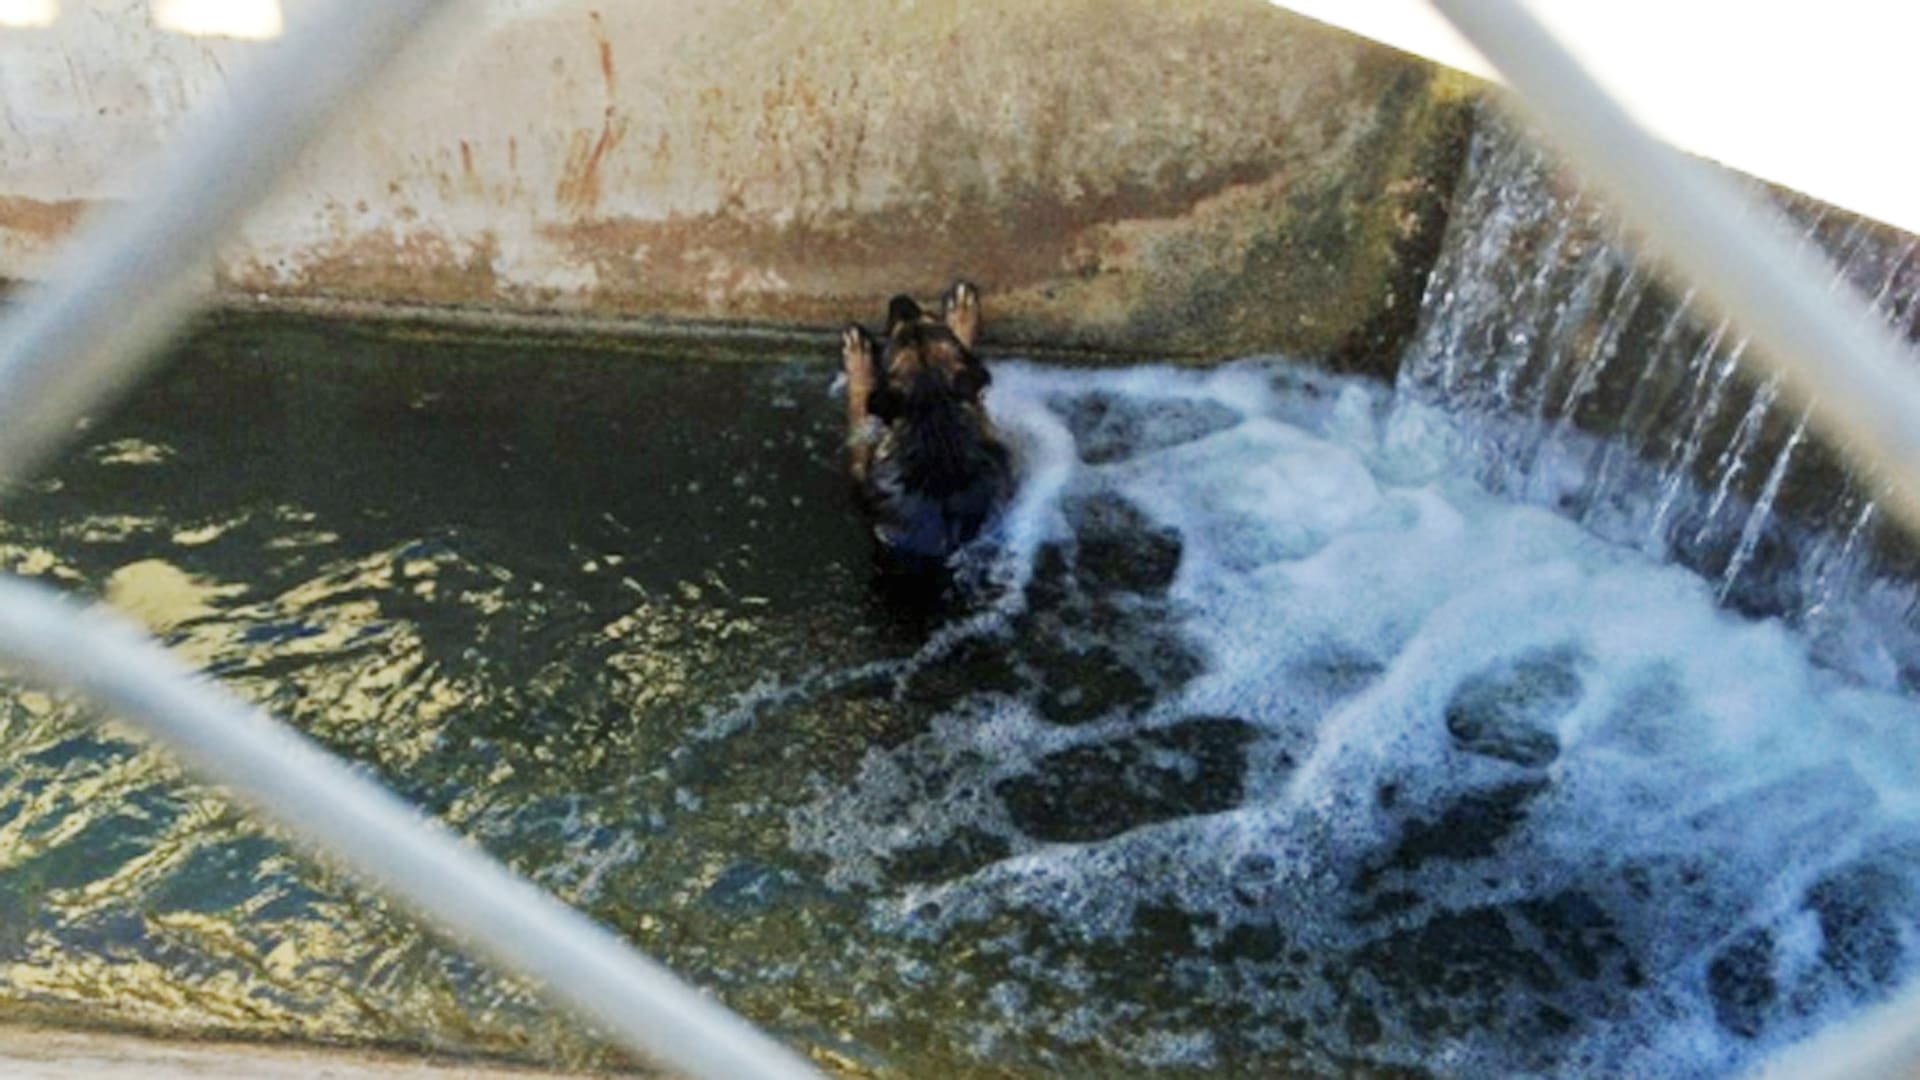 Dog Falls in Water Canal, Clings to Life Until Rescued